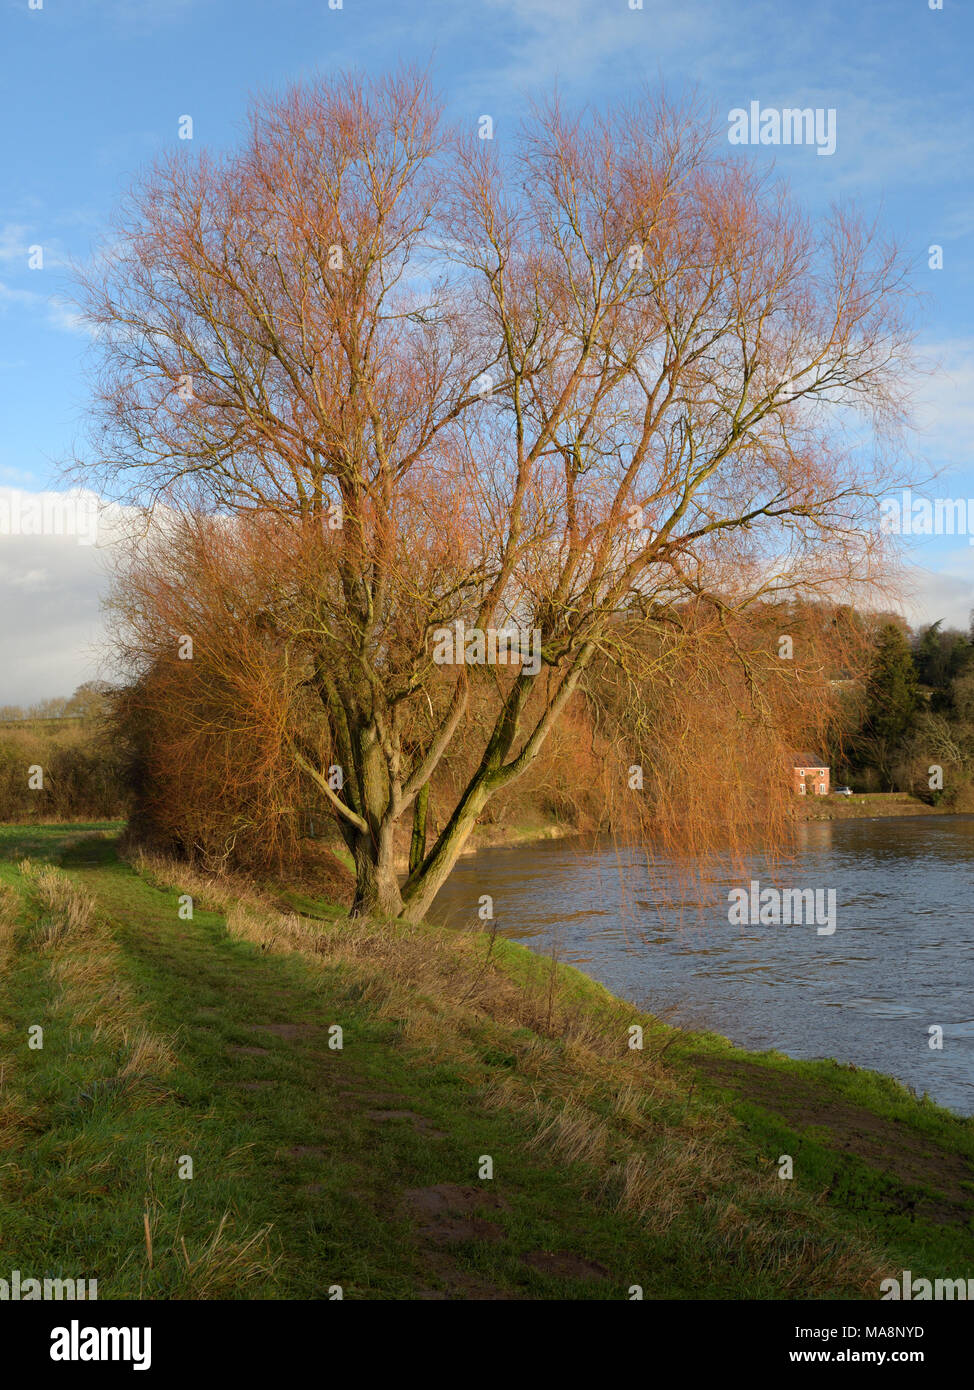 A Willow Tree in the sun on the river Wye near Hay on Wye - Stock Image